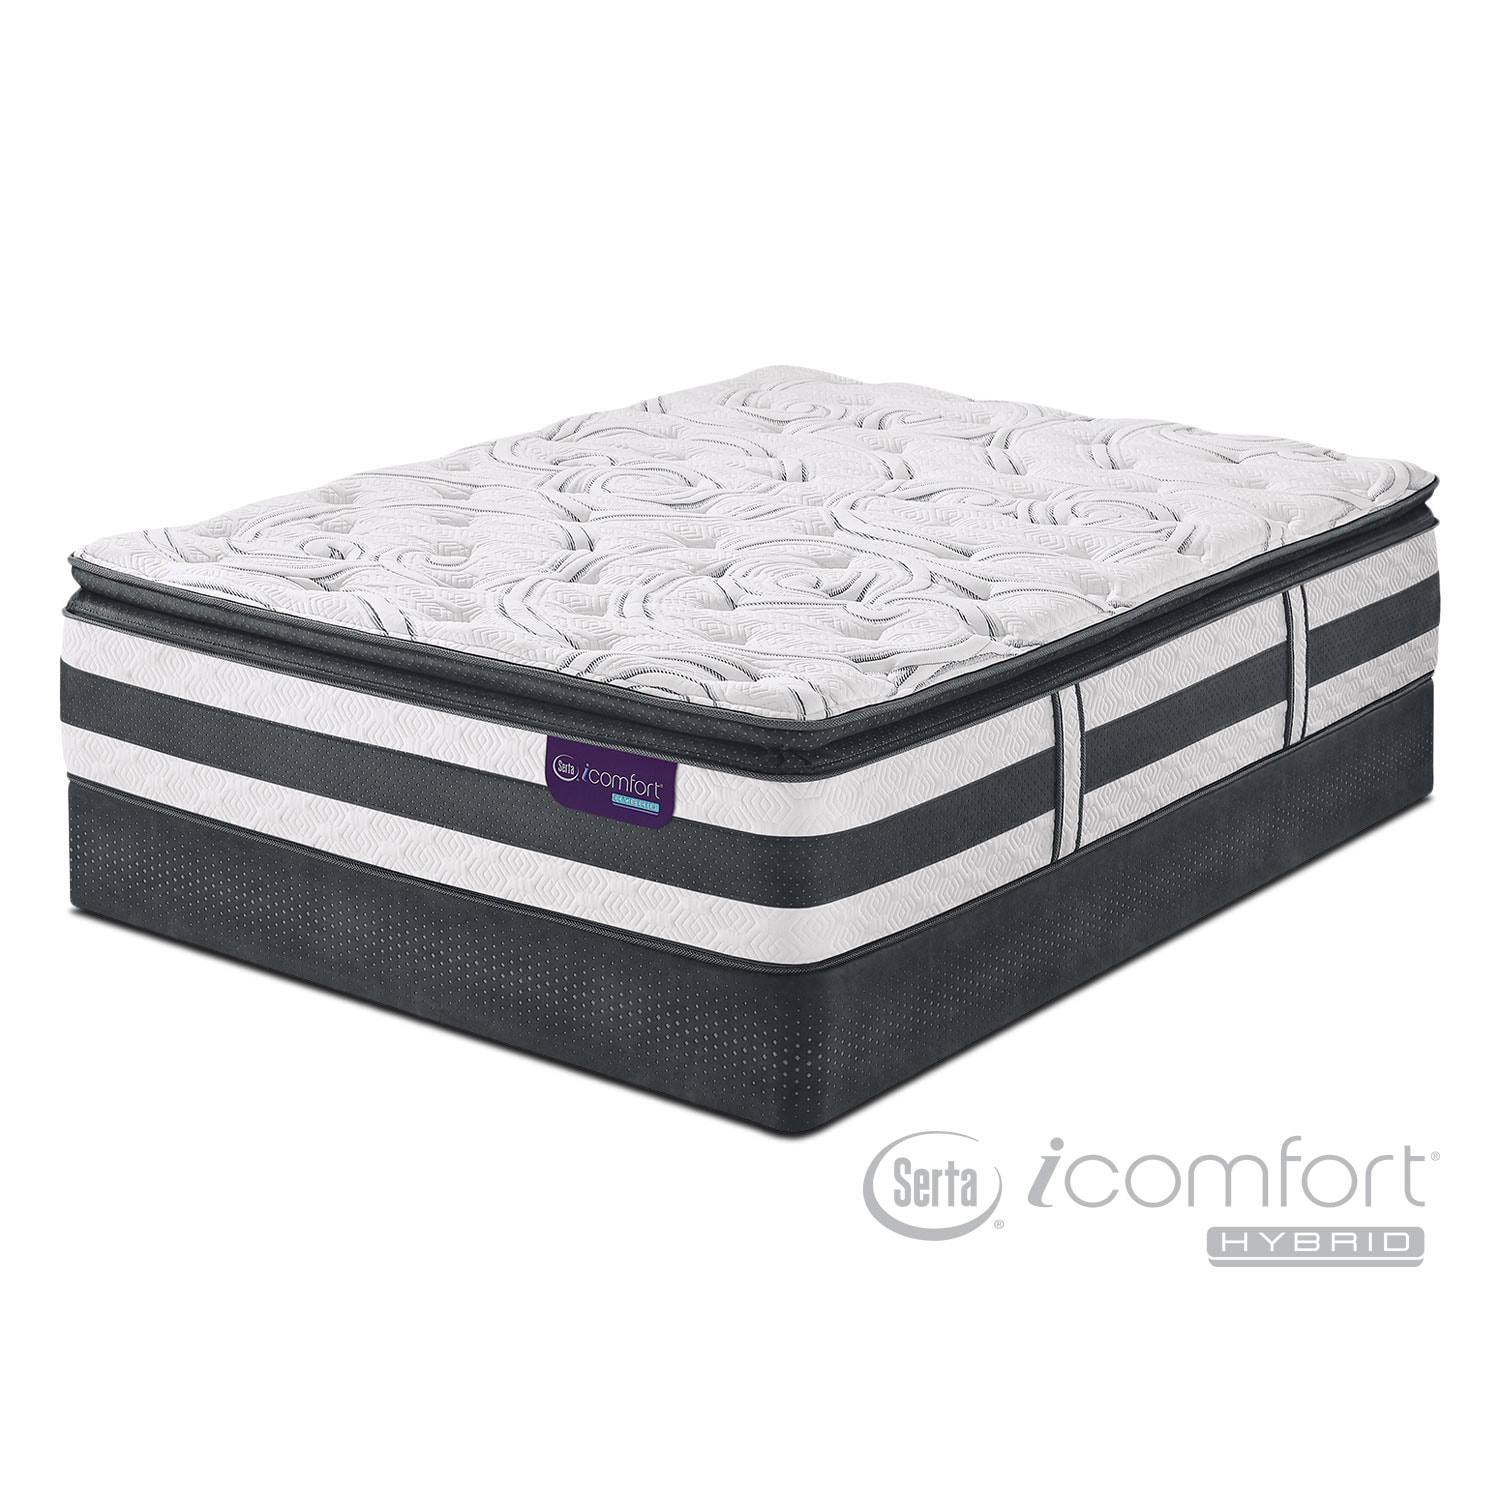 Mattresses and Bedding - Observer King Mattress/Split Foundation Set